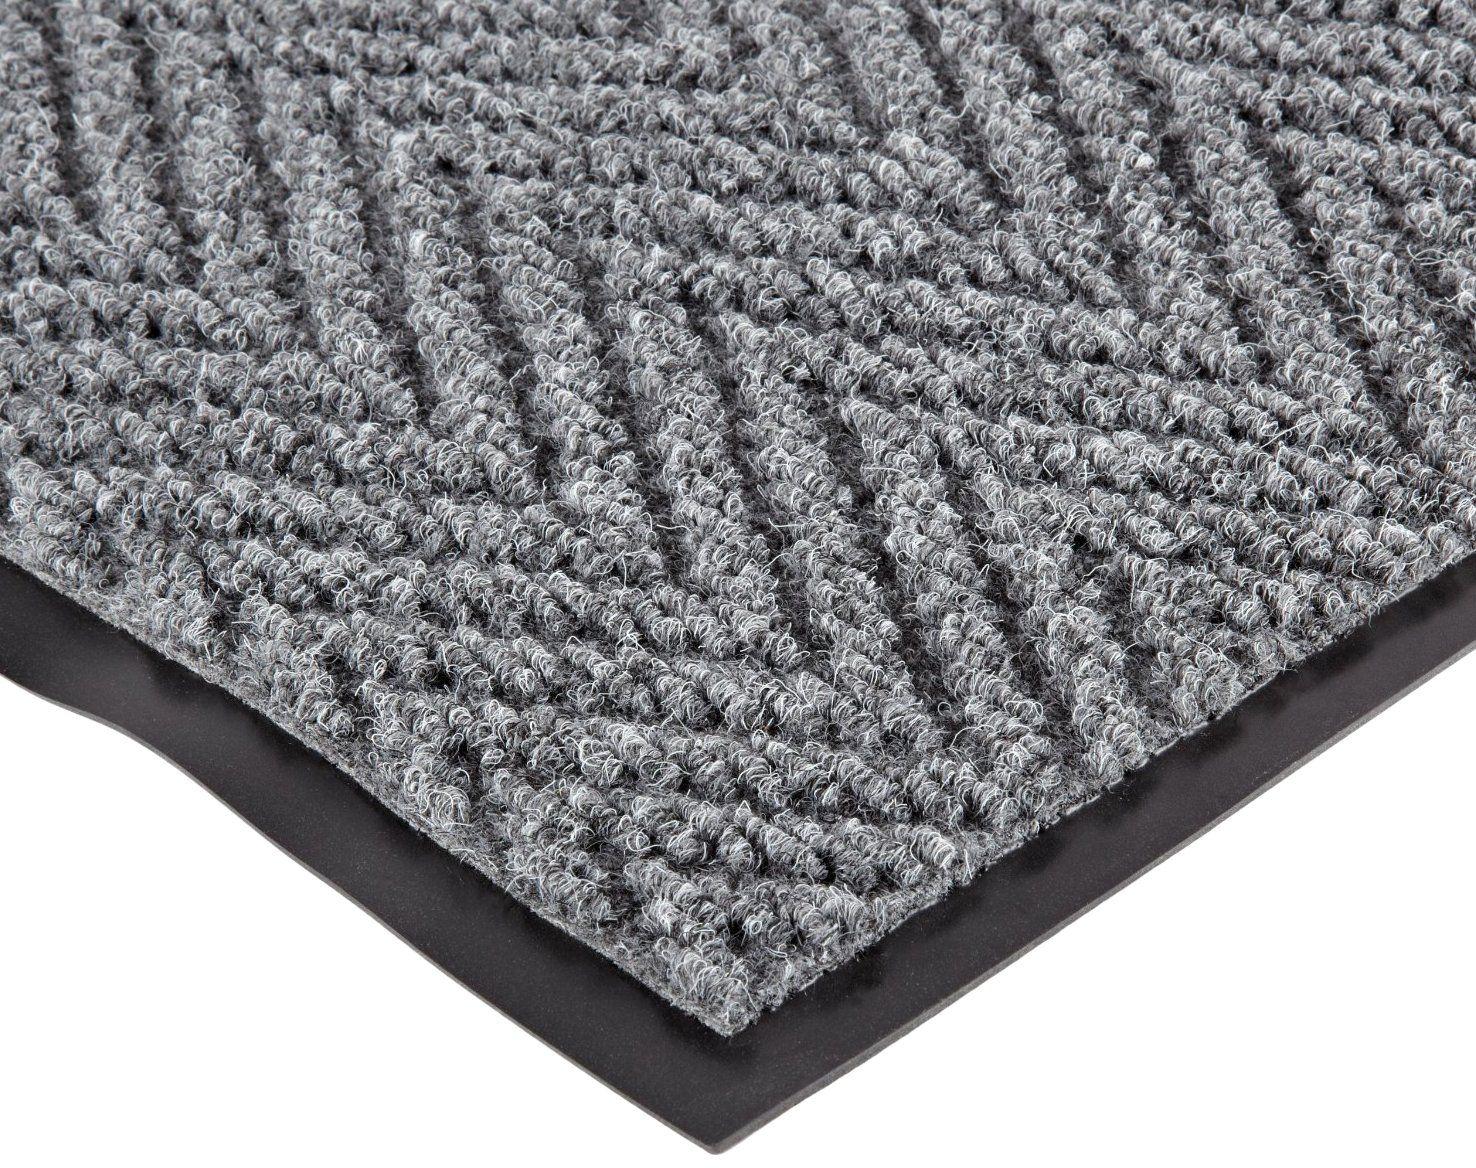 NoTrax 118 Arrow Trax Entrance Mat, for Main Entranceways and Heavy Traffic Areas, 3' Width x 5' Length x 3/8'' Thickness, Gray